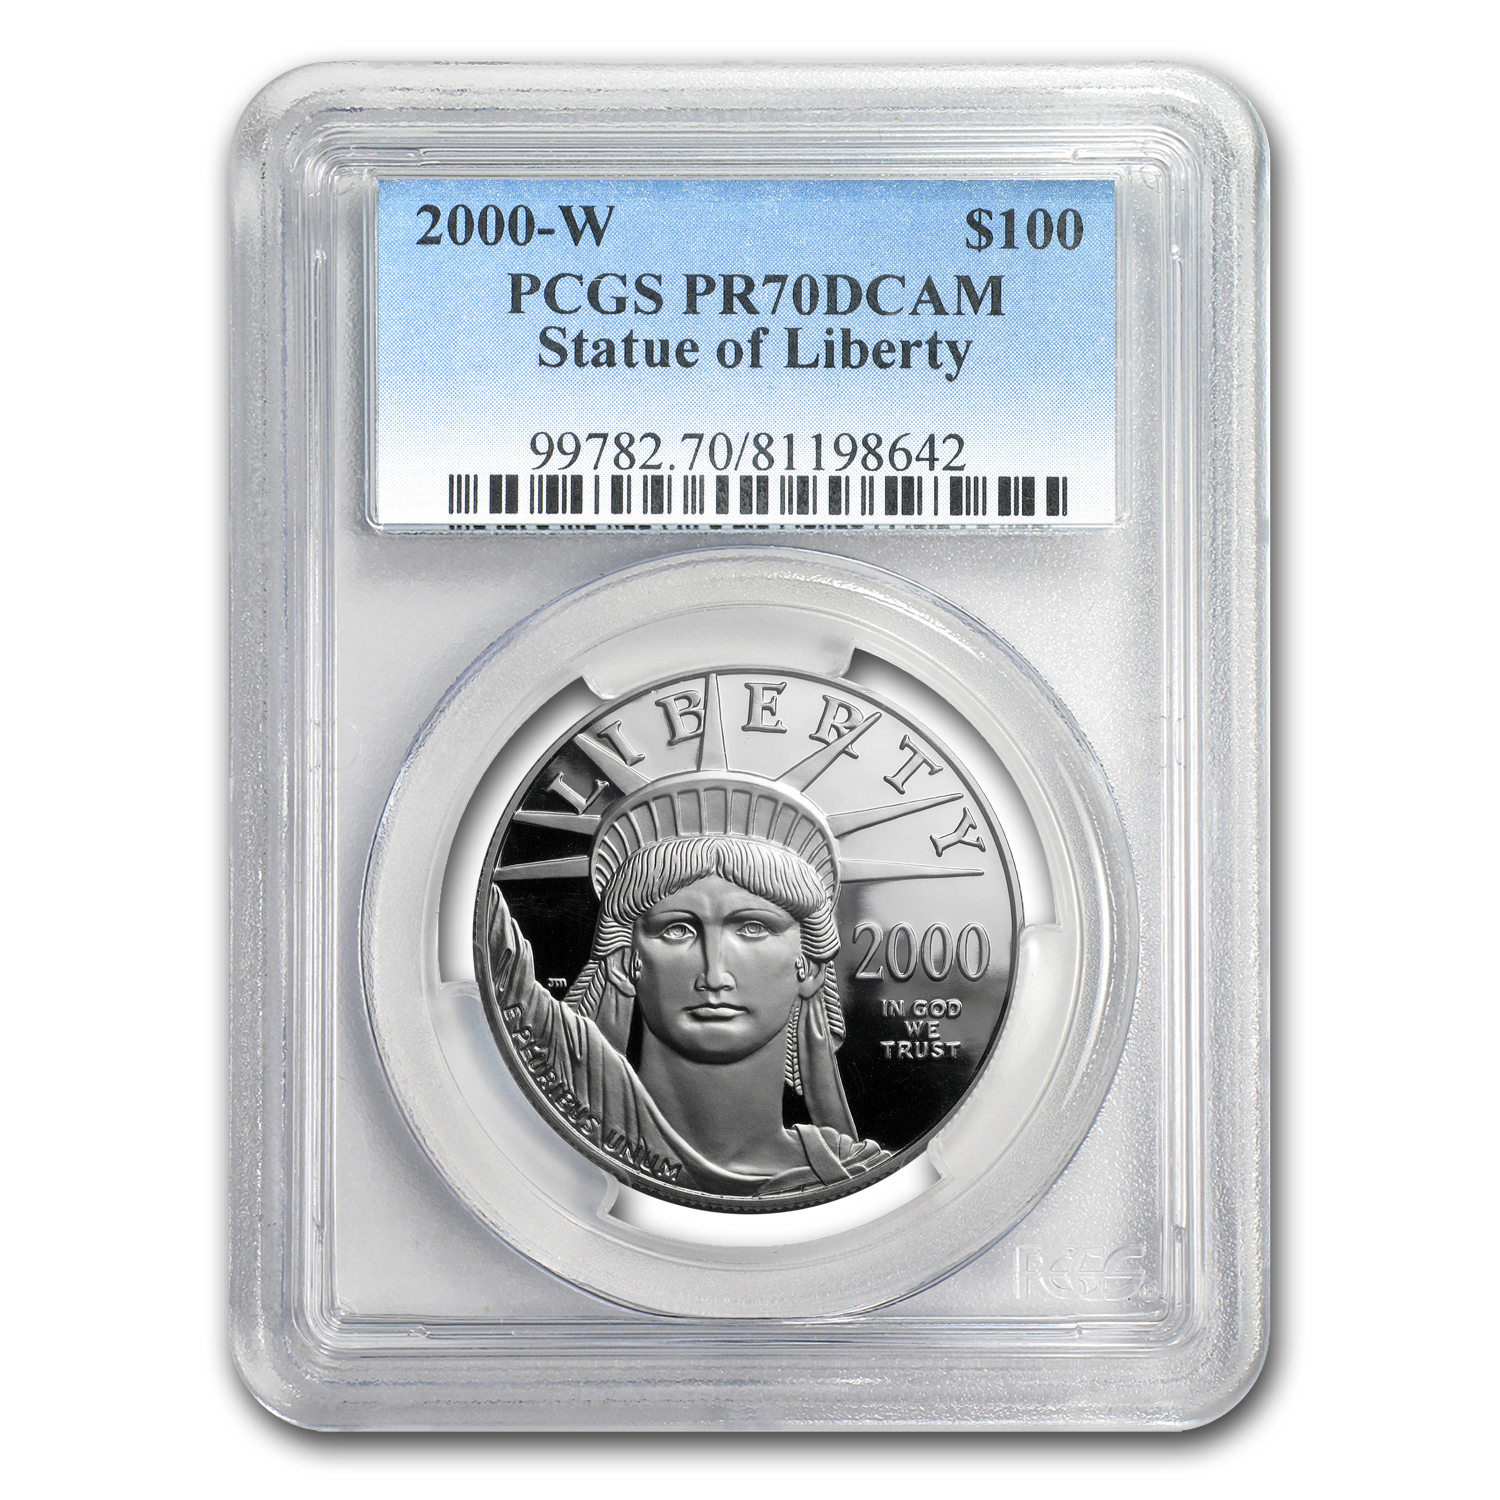 2000-W 1 oz Proof Platinum American Eagle PR-70 PCGS Registry Set